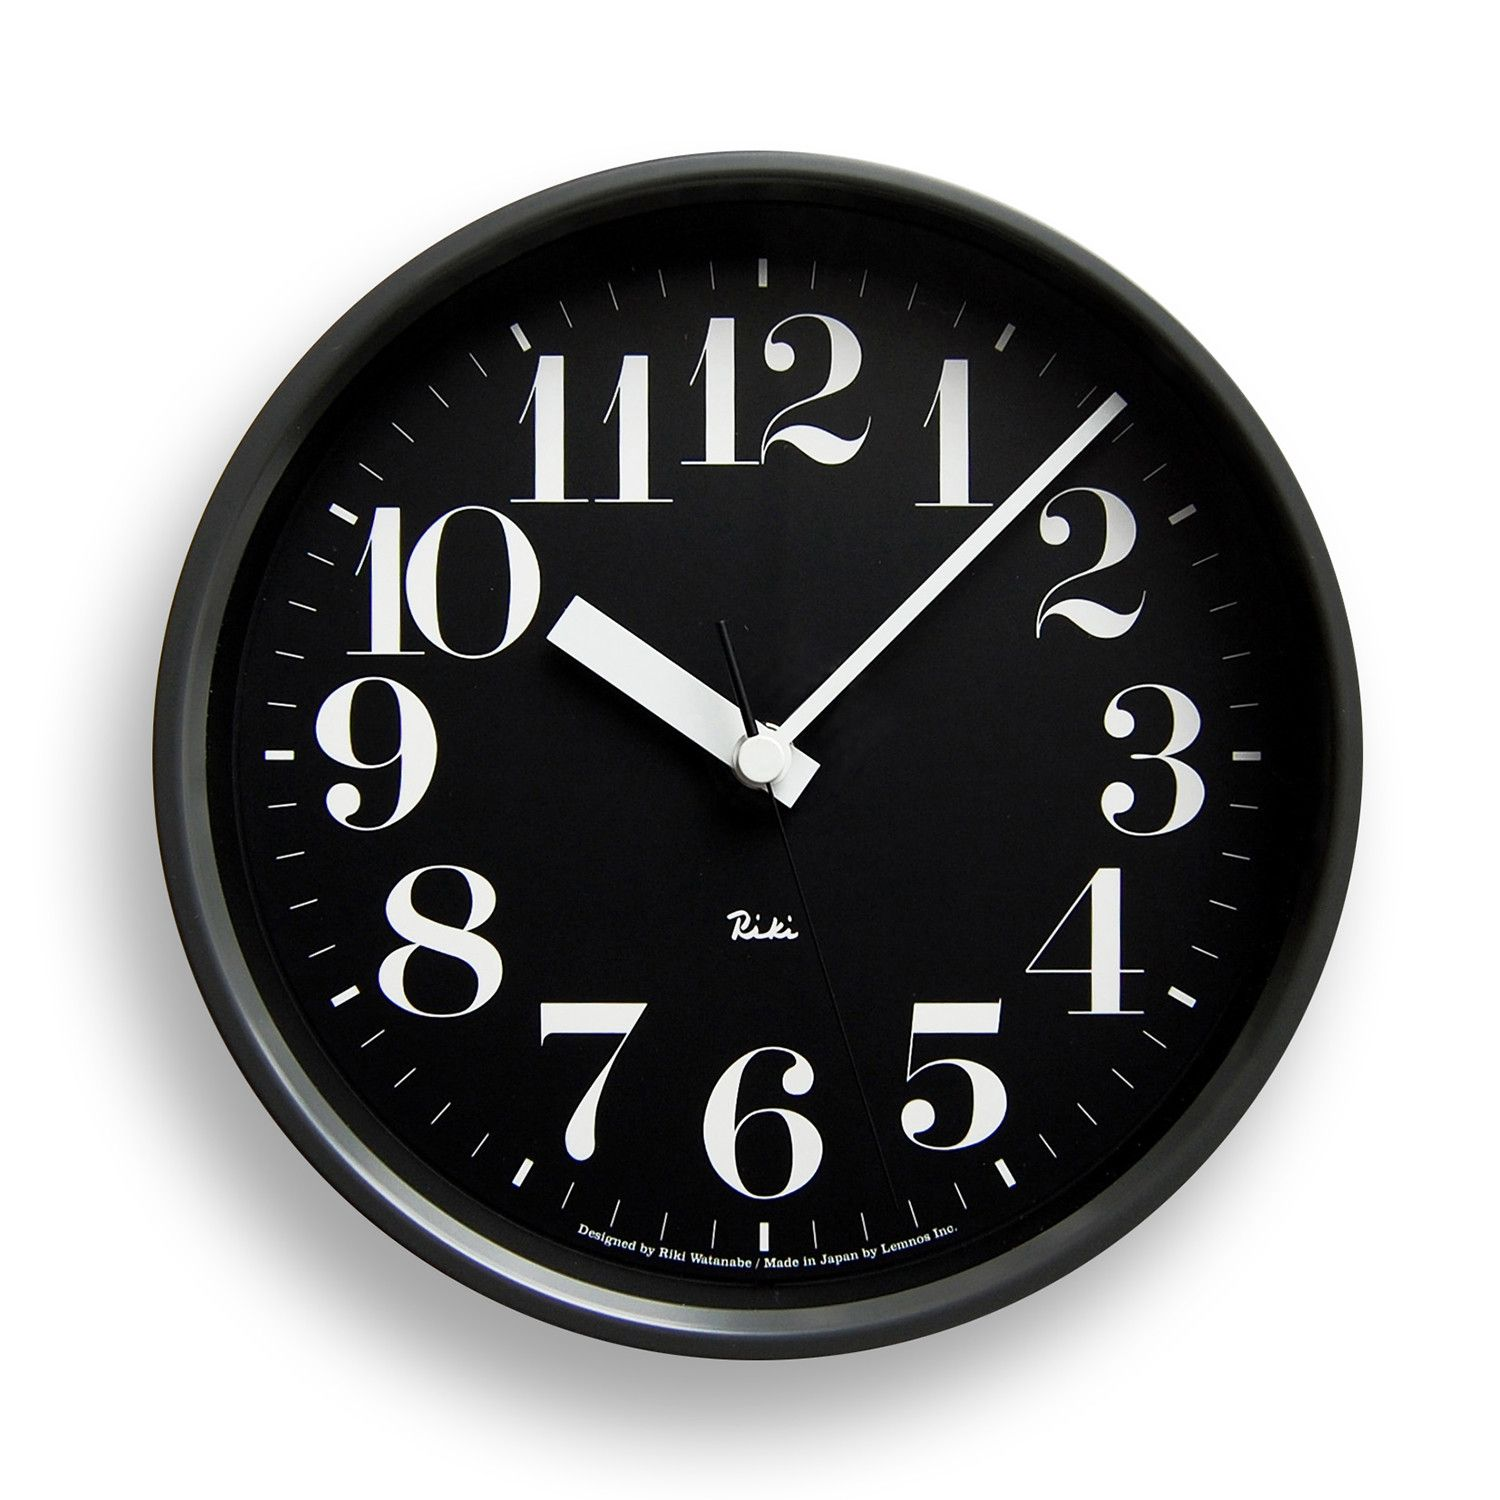 Riki Steel Clock Black Clock Wall Clock Black Design